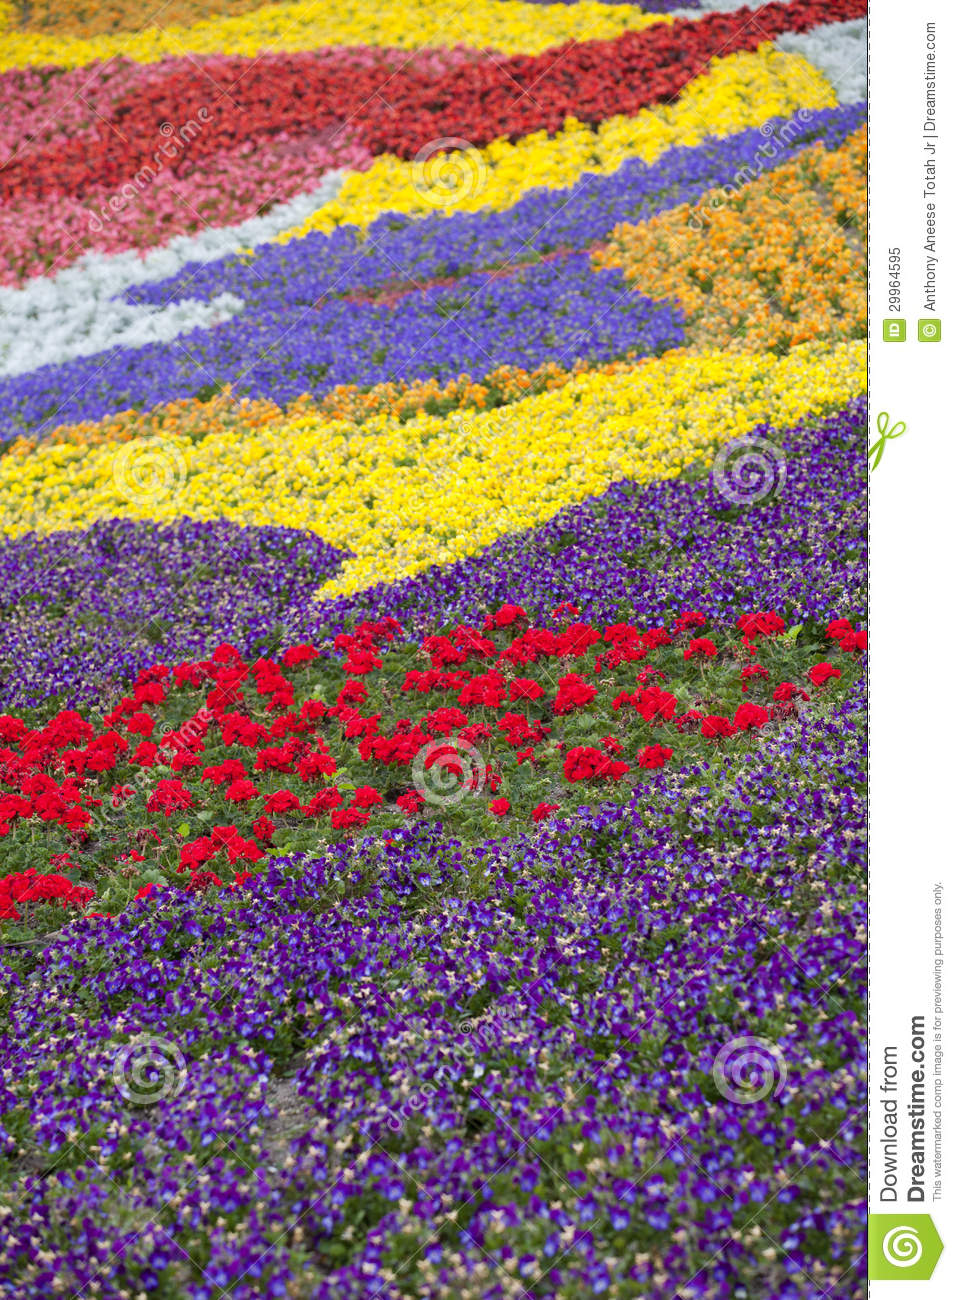 Painting with flowers royalty free stock photo image for What makes flowers different colors